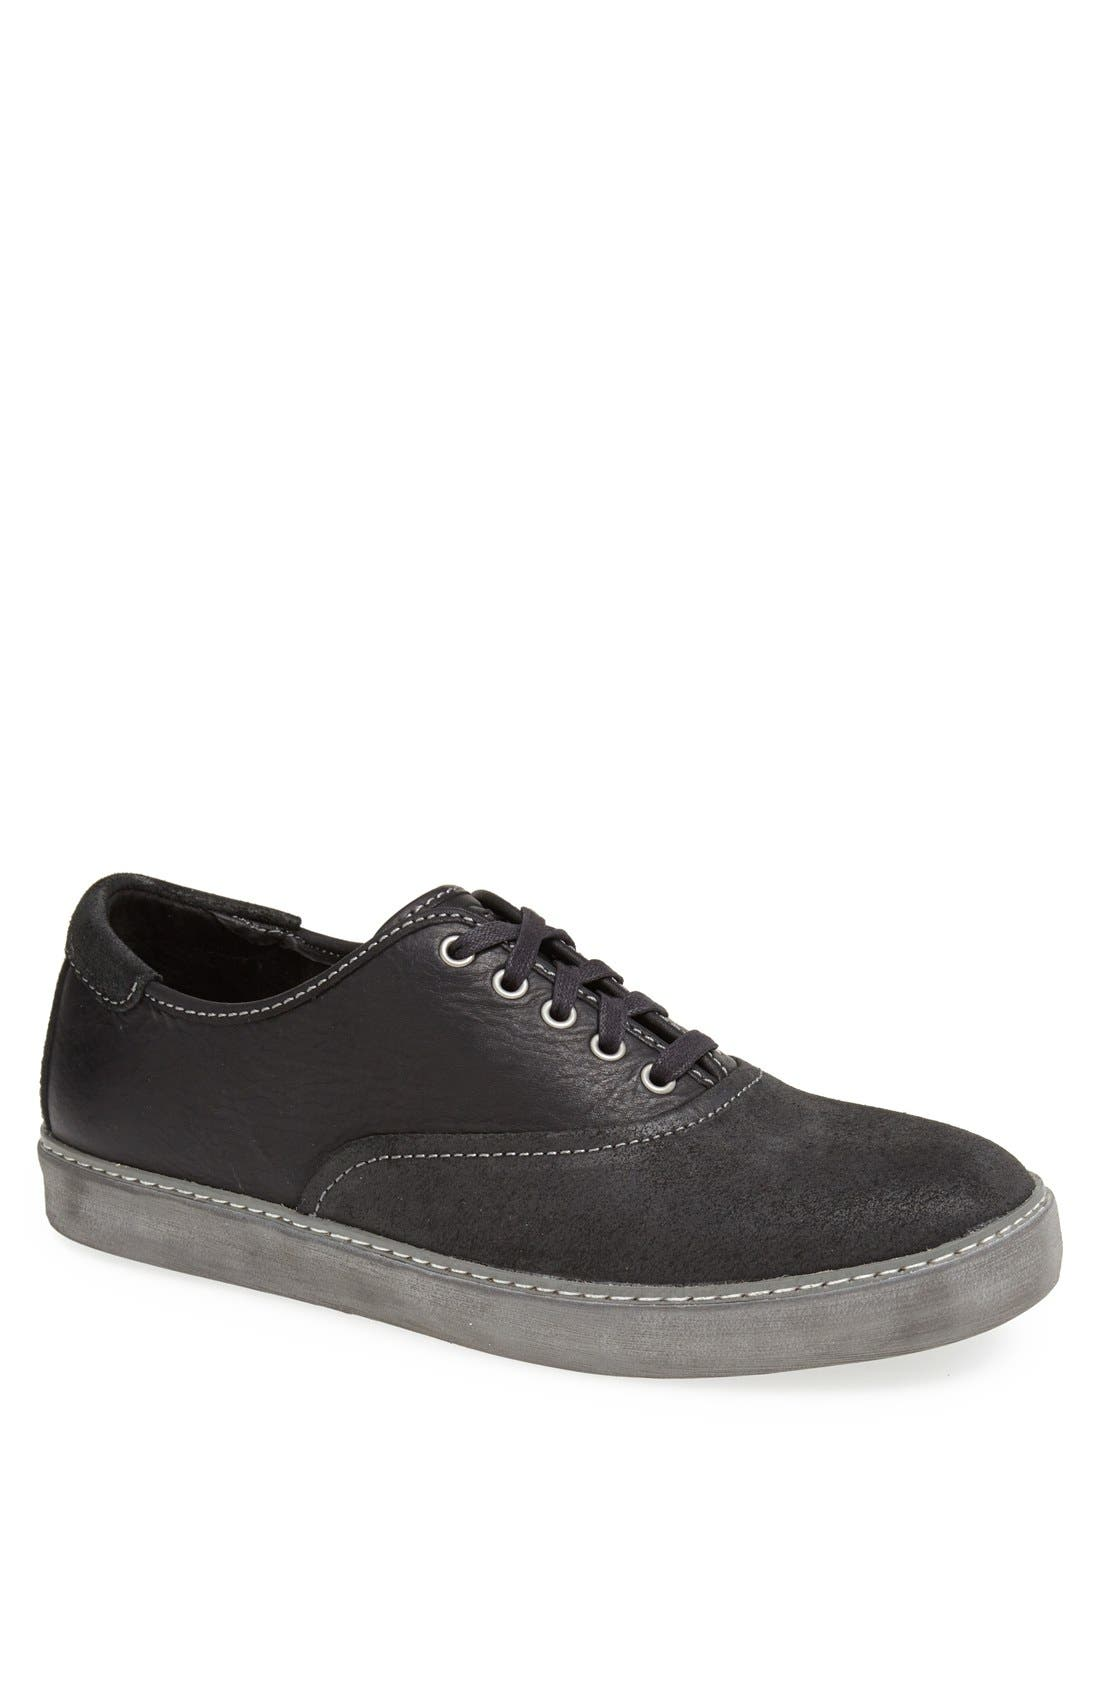 Alternate Image 1 Selected - UGG® Australia 'Garrick' Oxford Sneaker